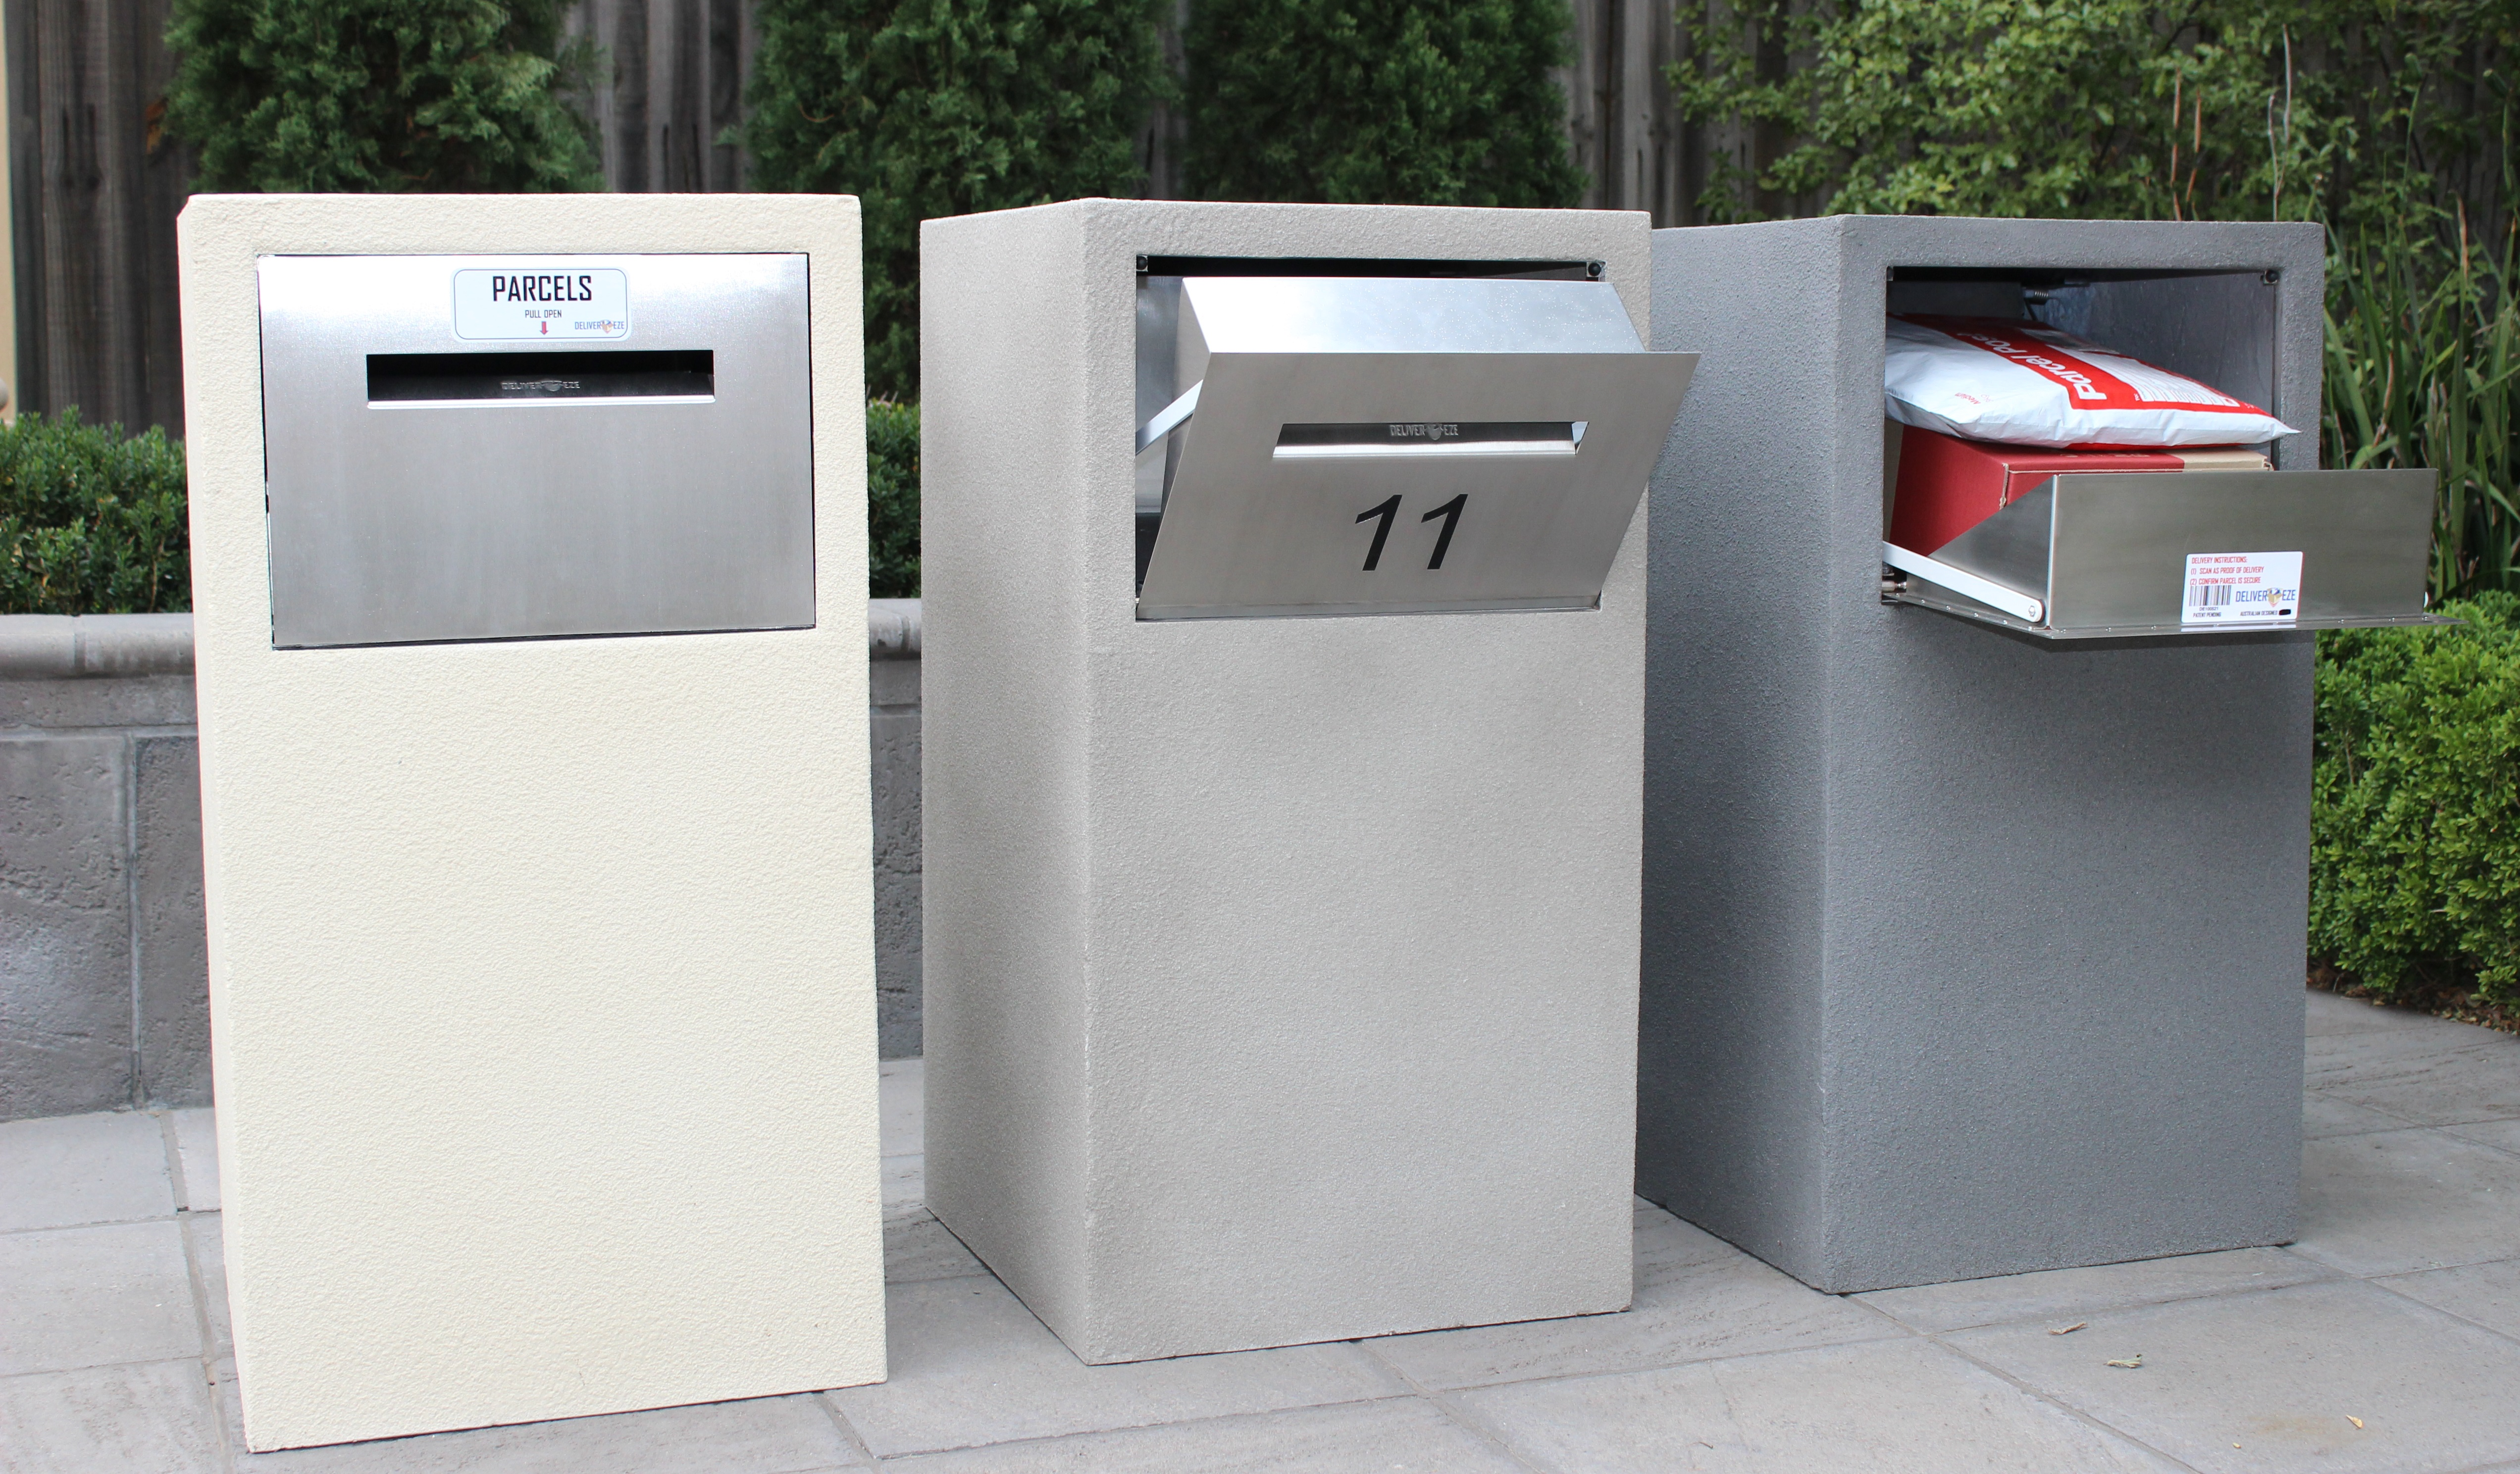 All New Mosman Stainless Steel Parcel Letterbox